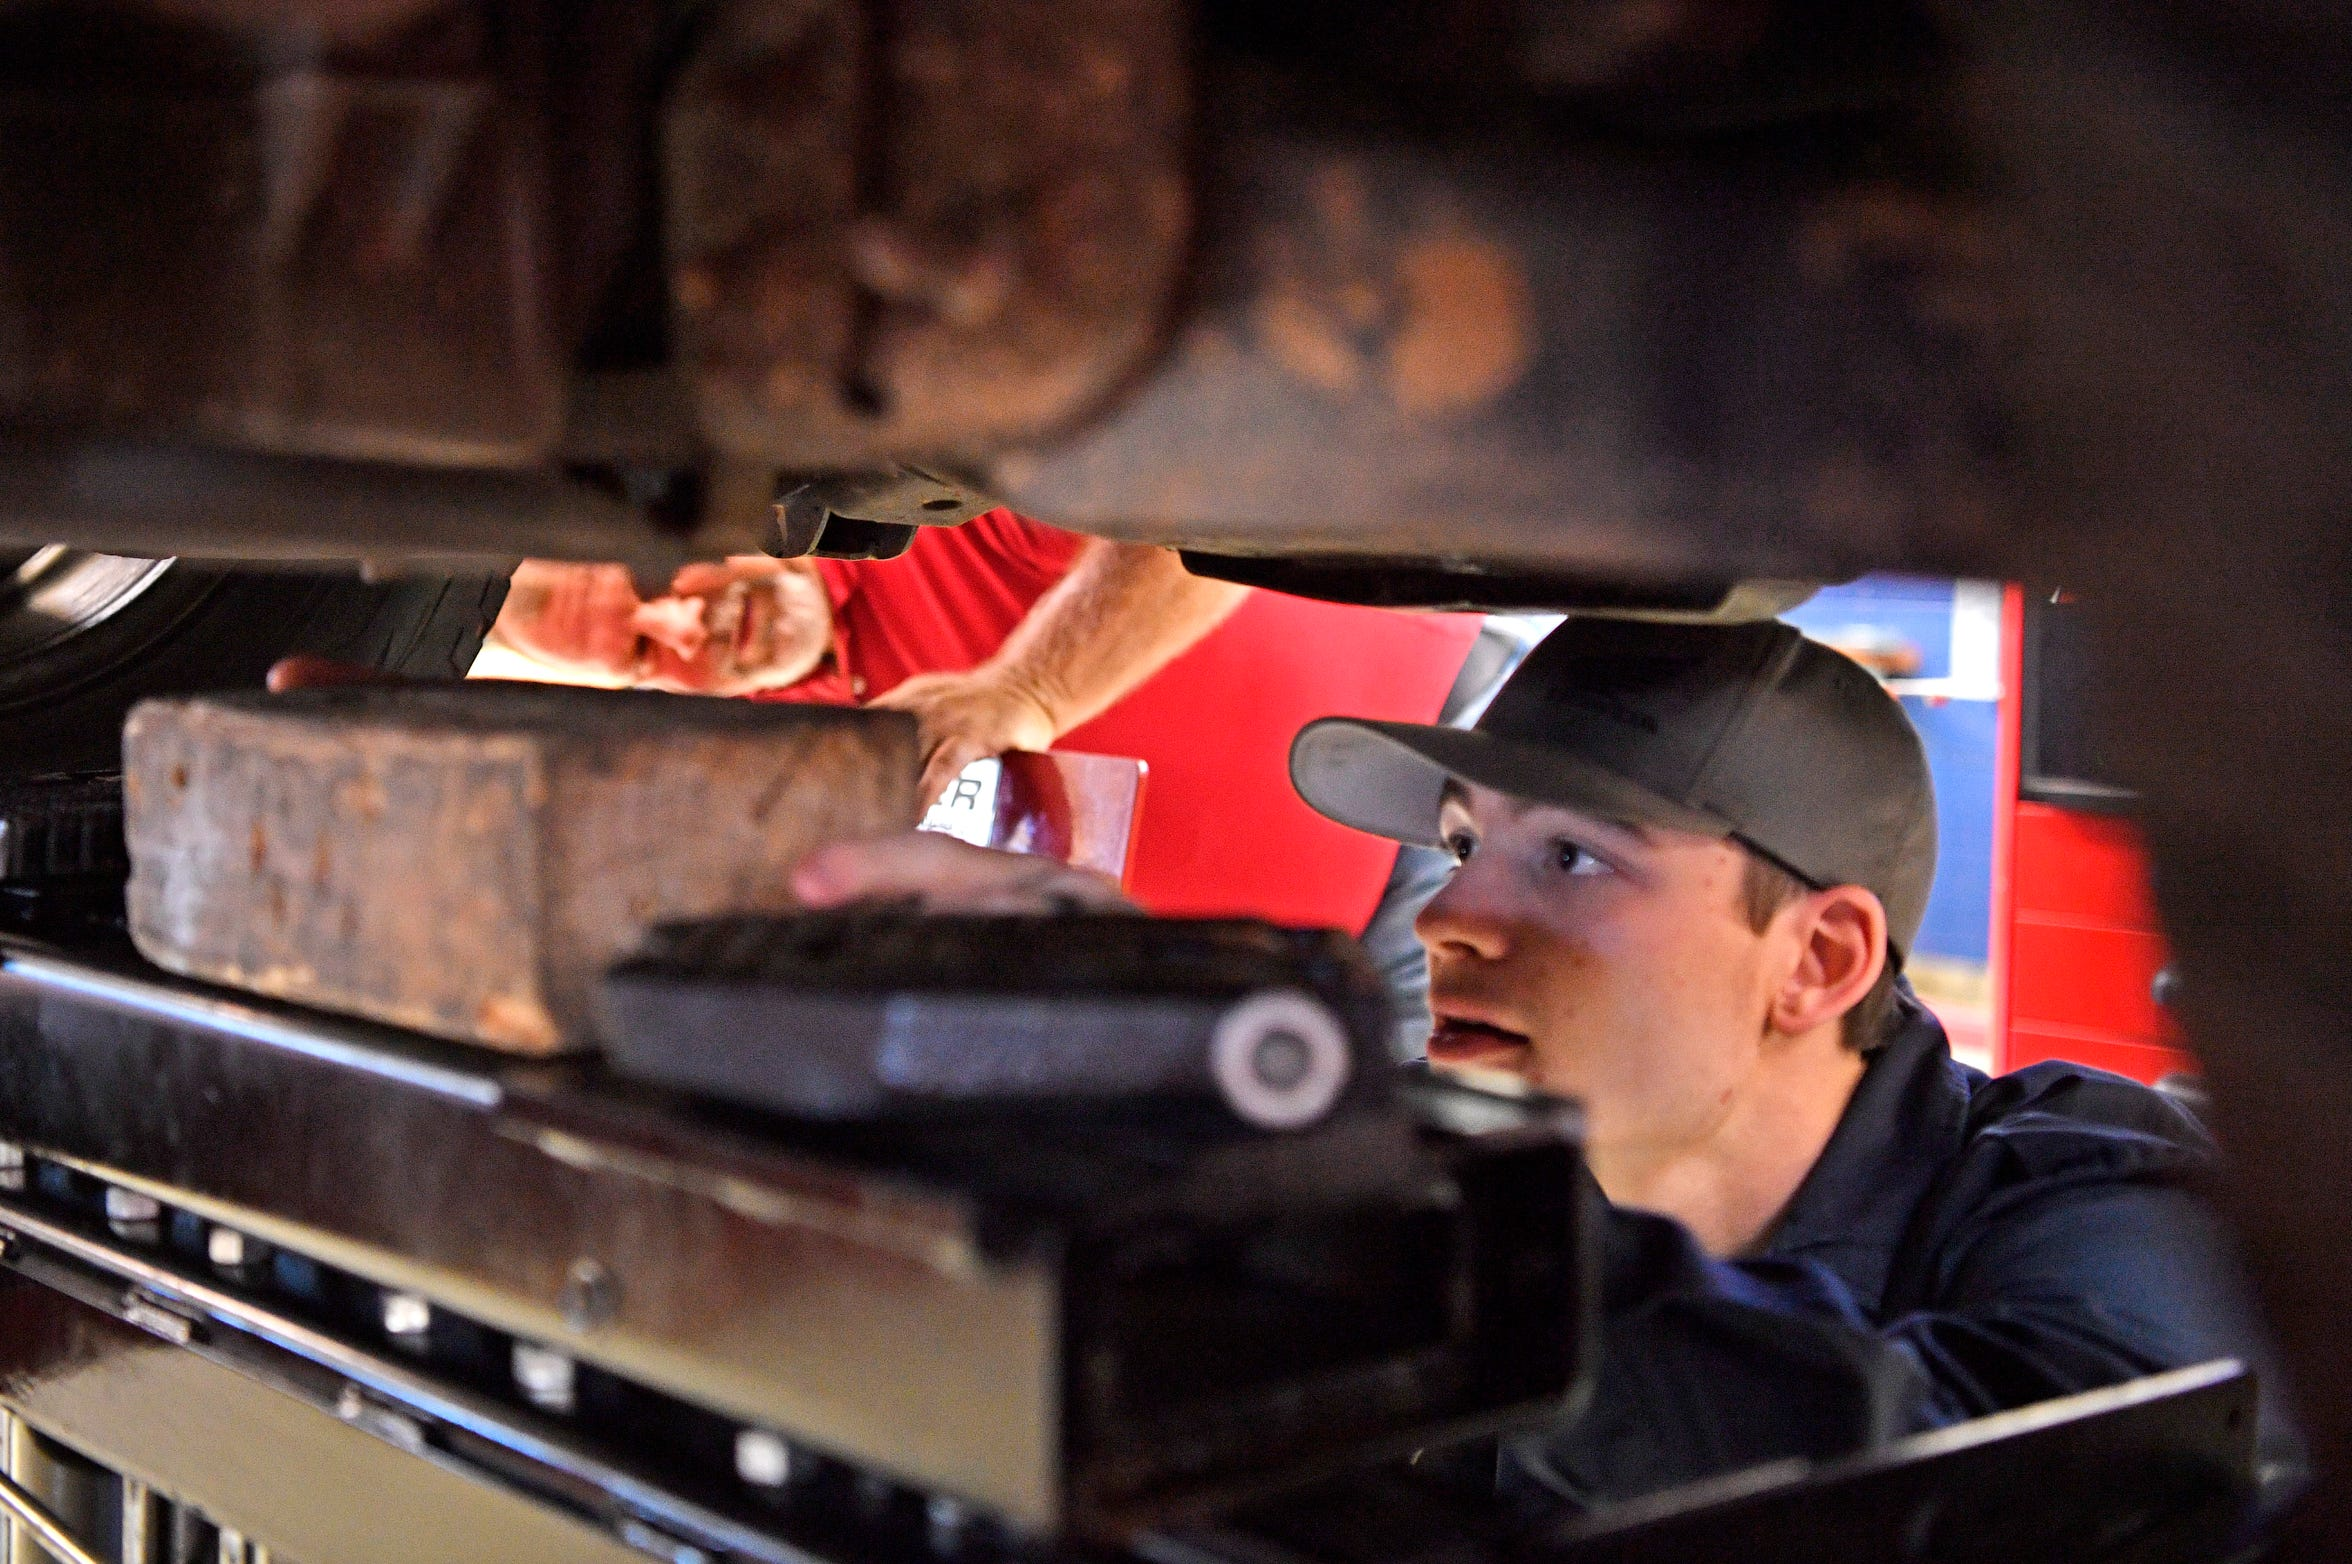 Instructor Mike McCord keeps a close eye on his student Morgan McAlpin at Tennessee College of Applied Technology in Hardeman County. McAlpin hopes to graduate in April and get a job as a mechanic full time. Thursday Oct. 11, 2018, in Bolivar, Tenn.